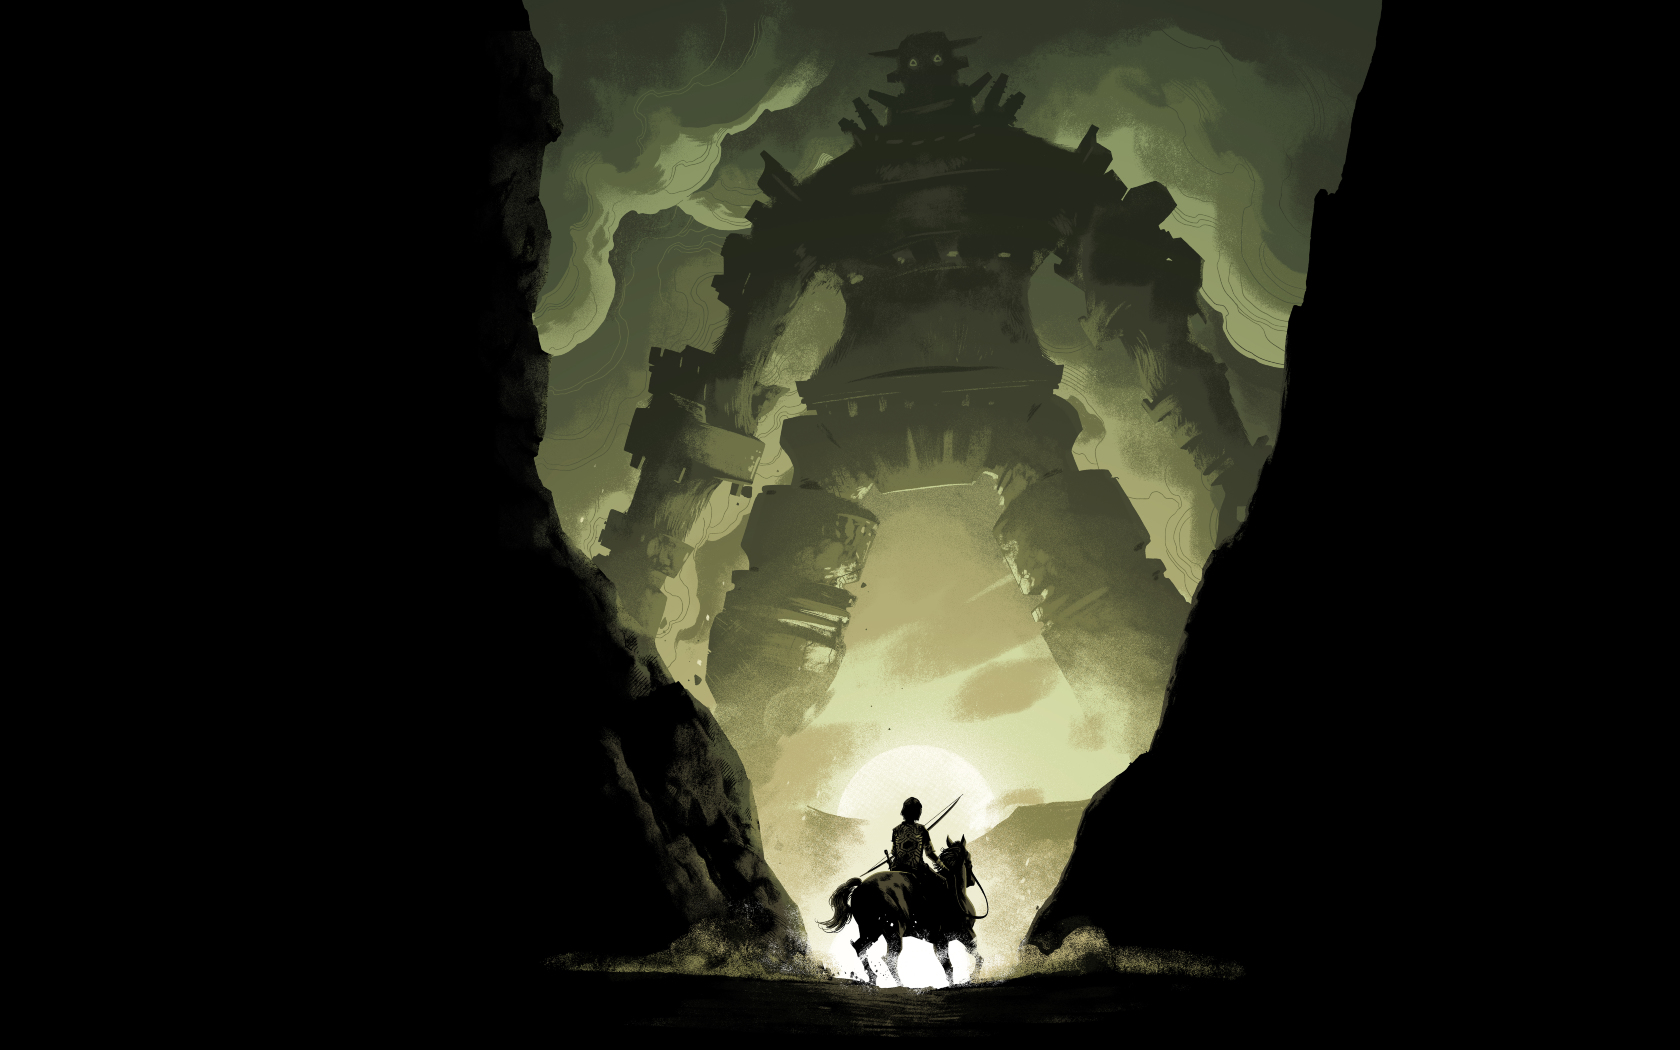 shadow of the colossus video game hd 8k wallpaper